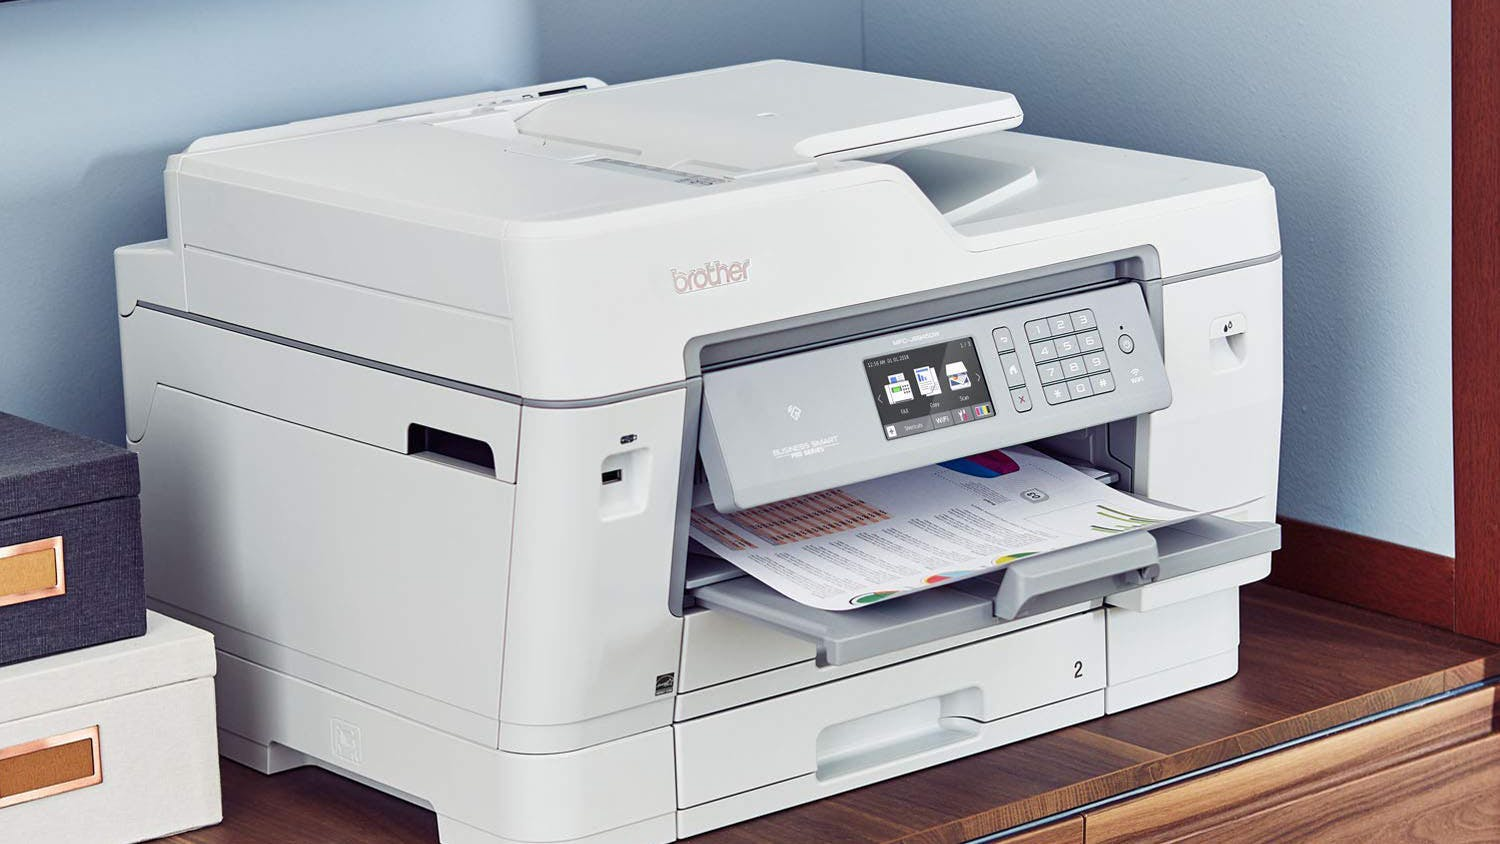 Brother MFCJ6945DW Inkjet All-in-One Printer